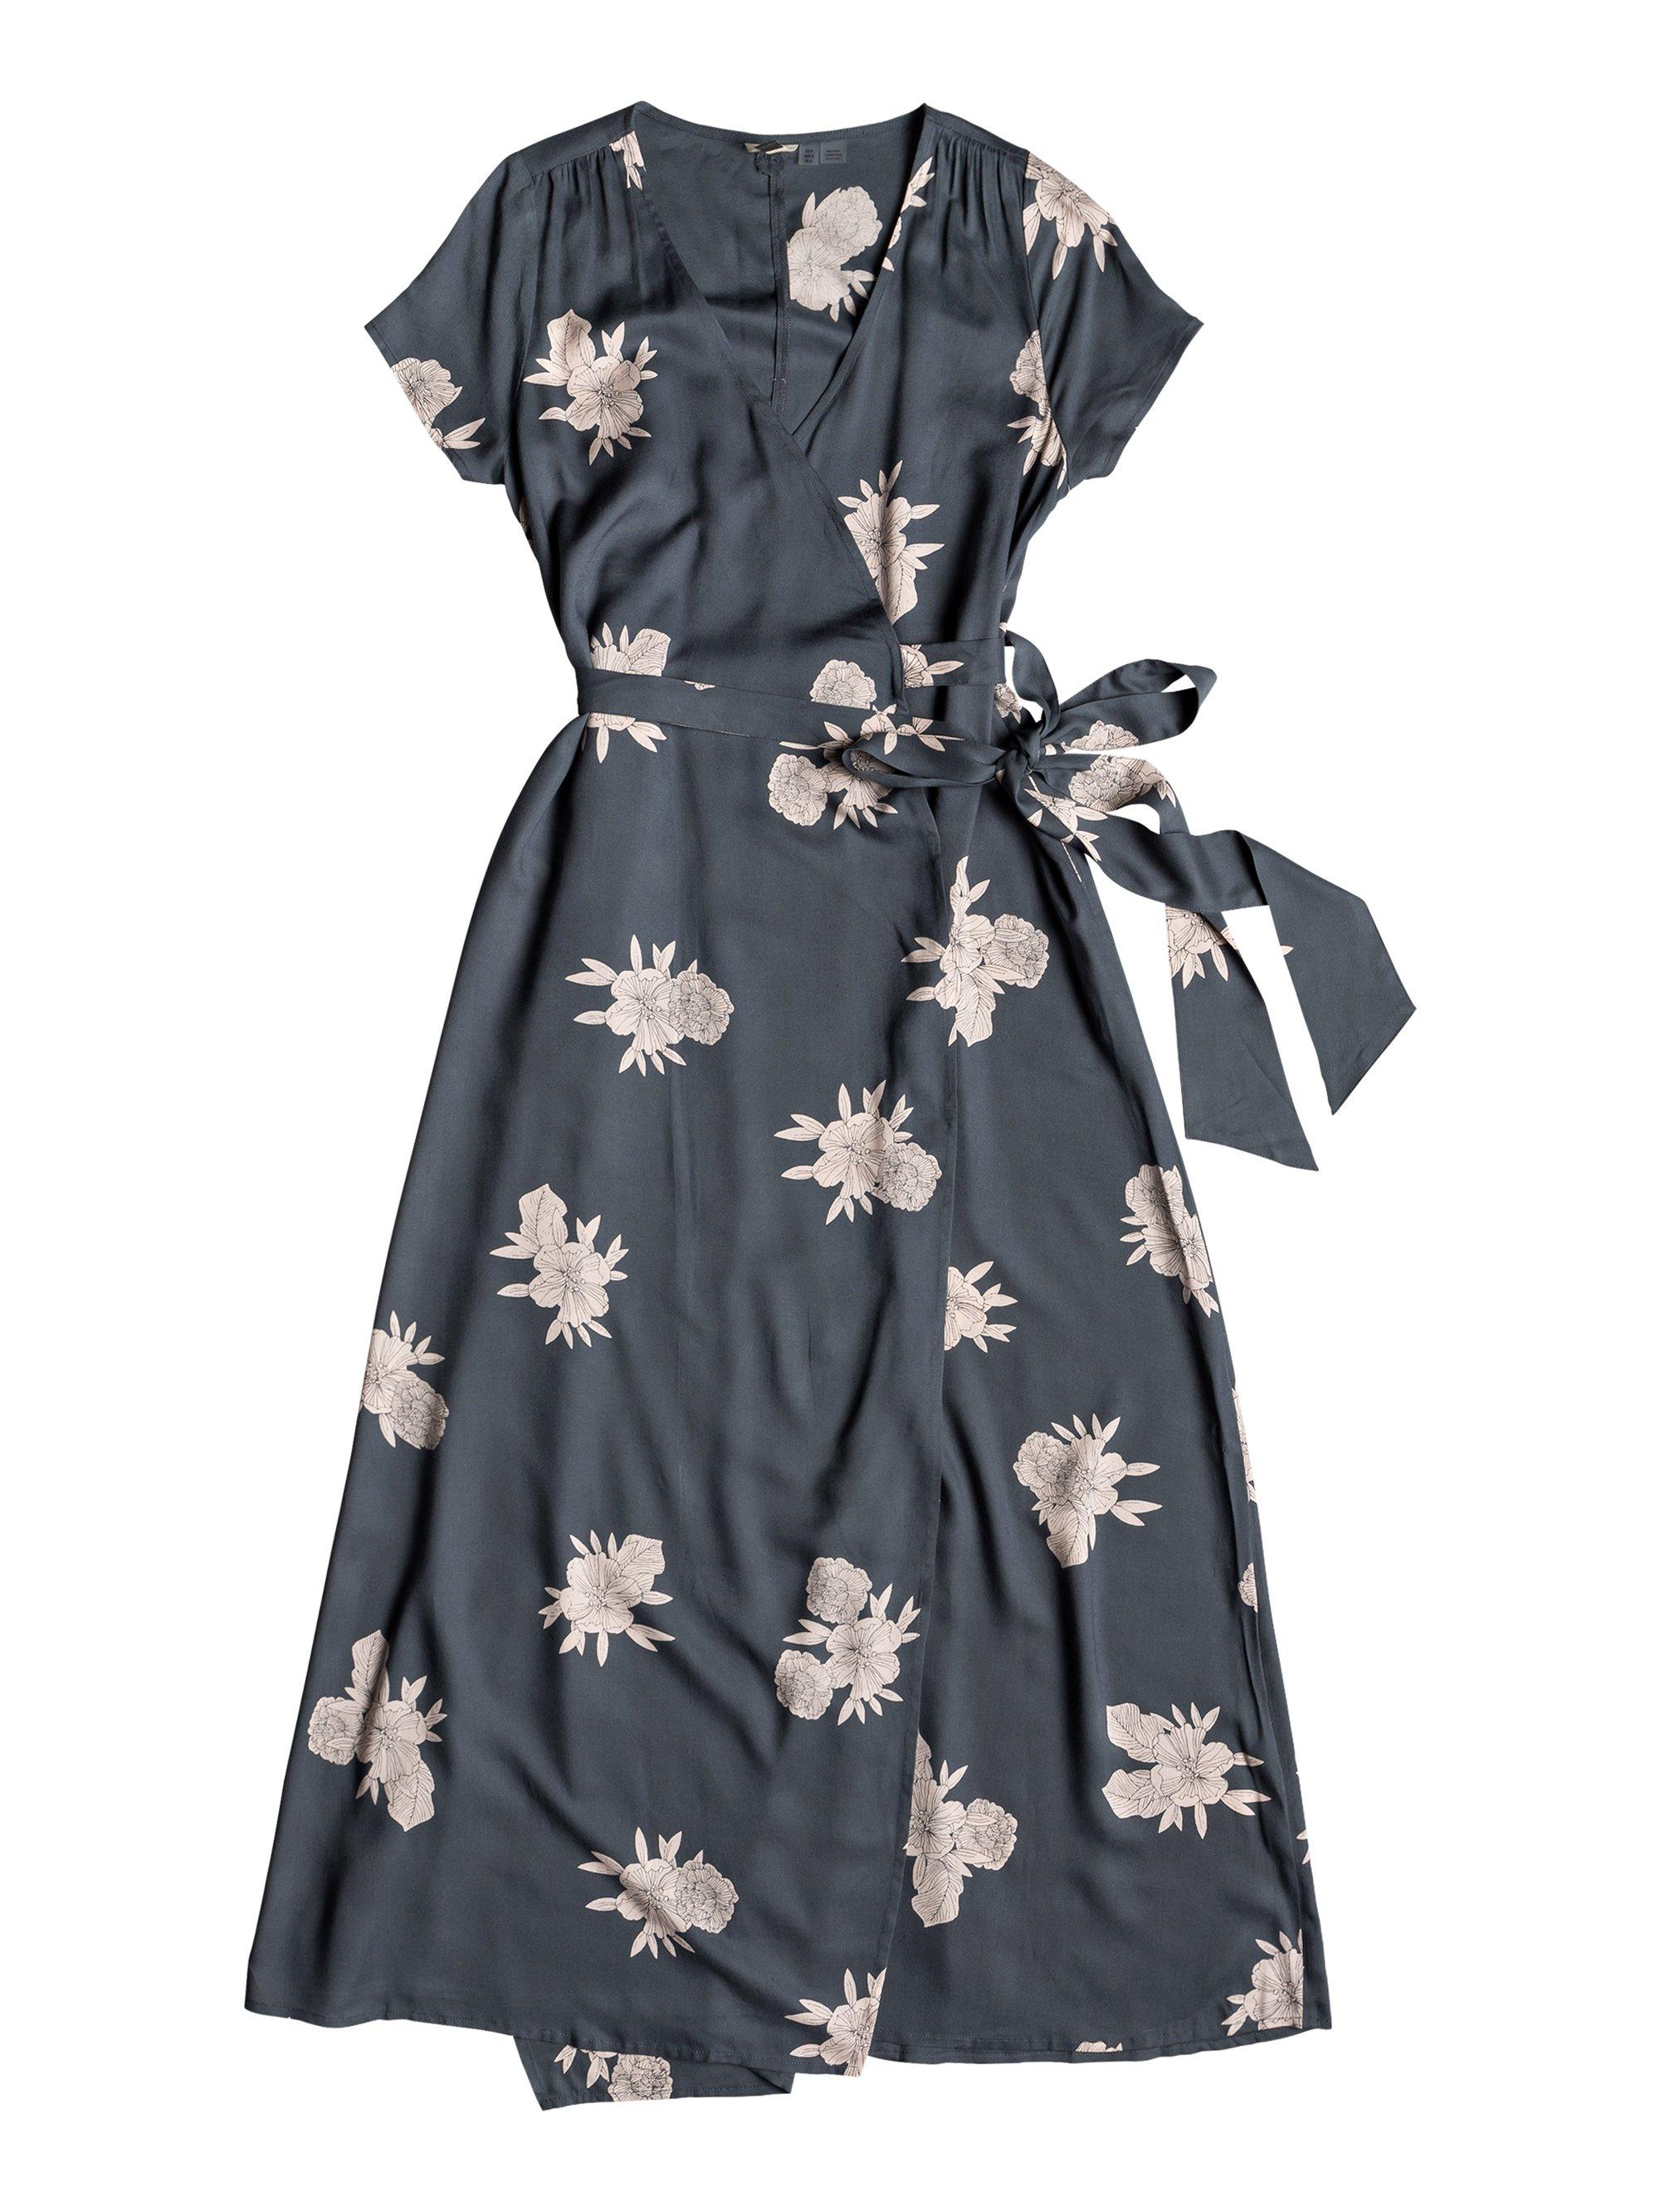 14c2abd1a191 DISTRICT DAY DRESS TURBULENCE ROSE AND PEARLS - Womens-Dresses and ...